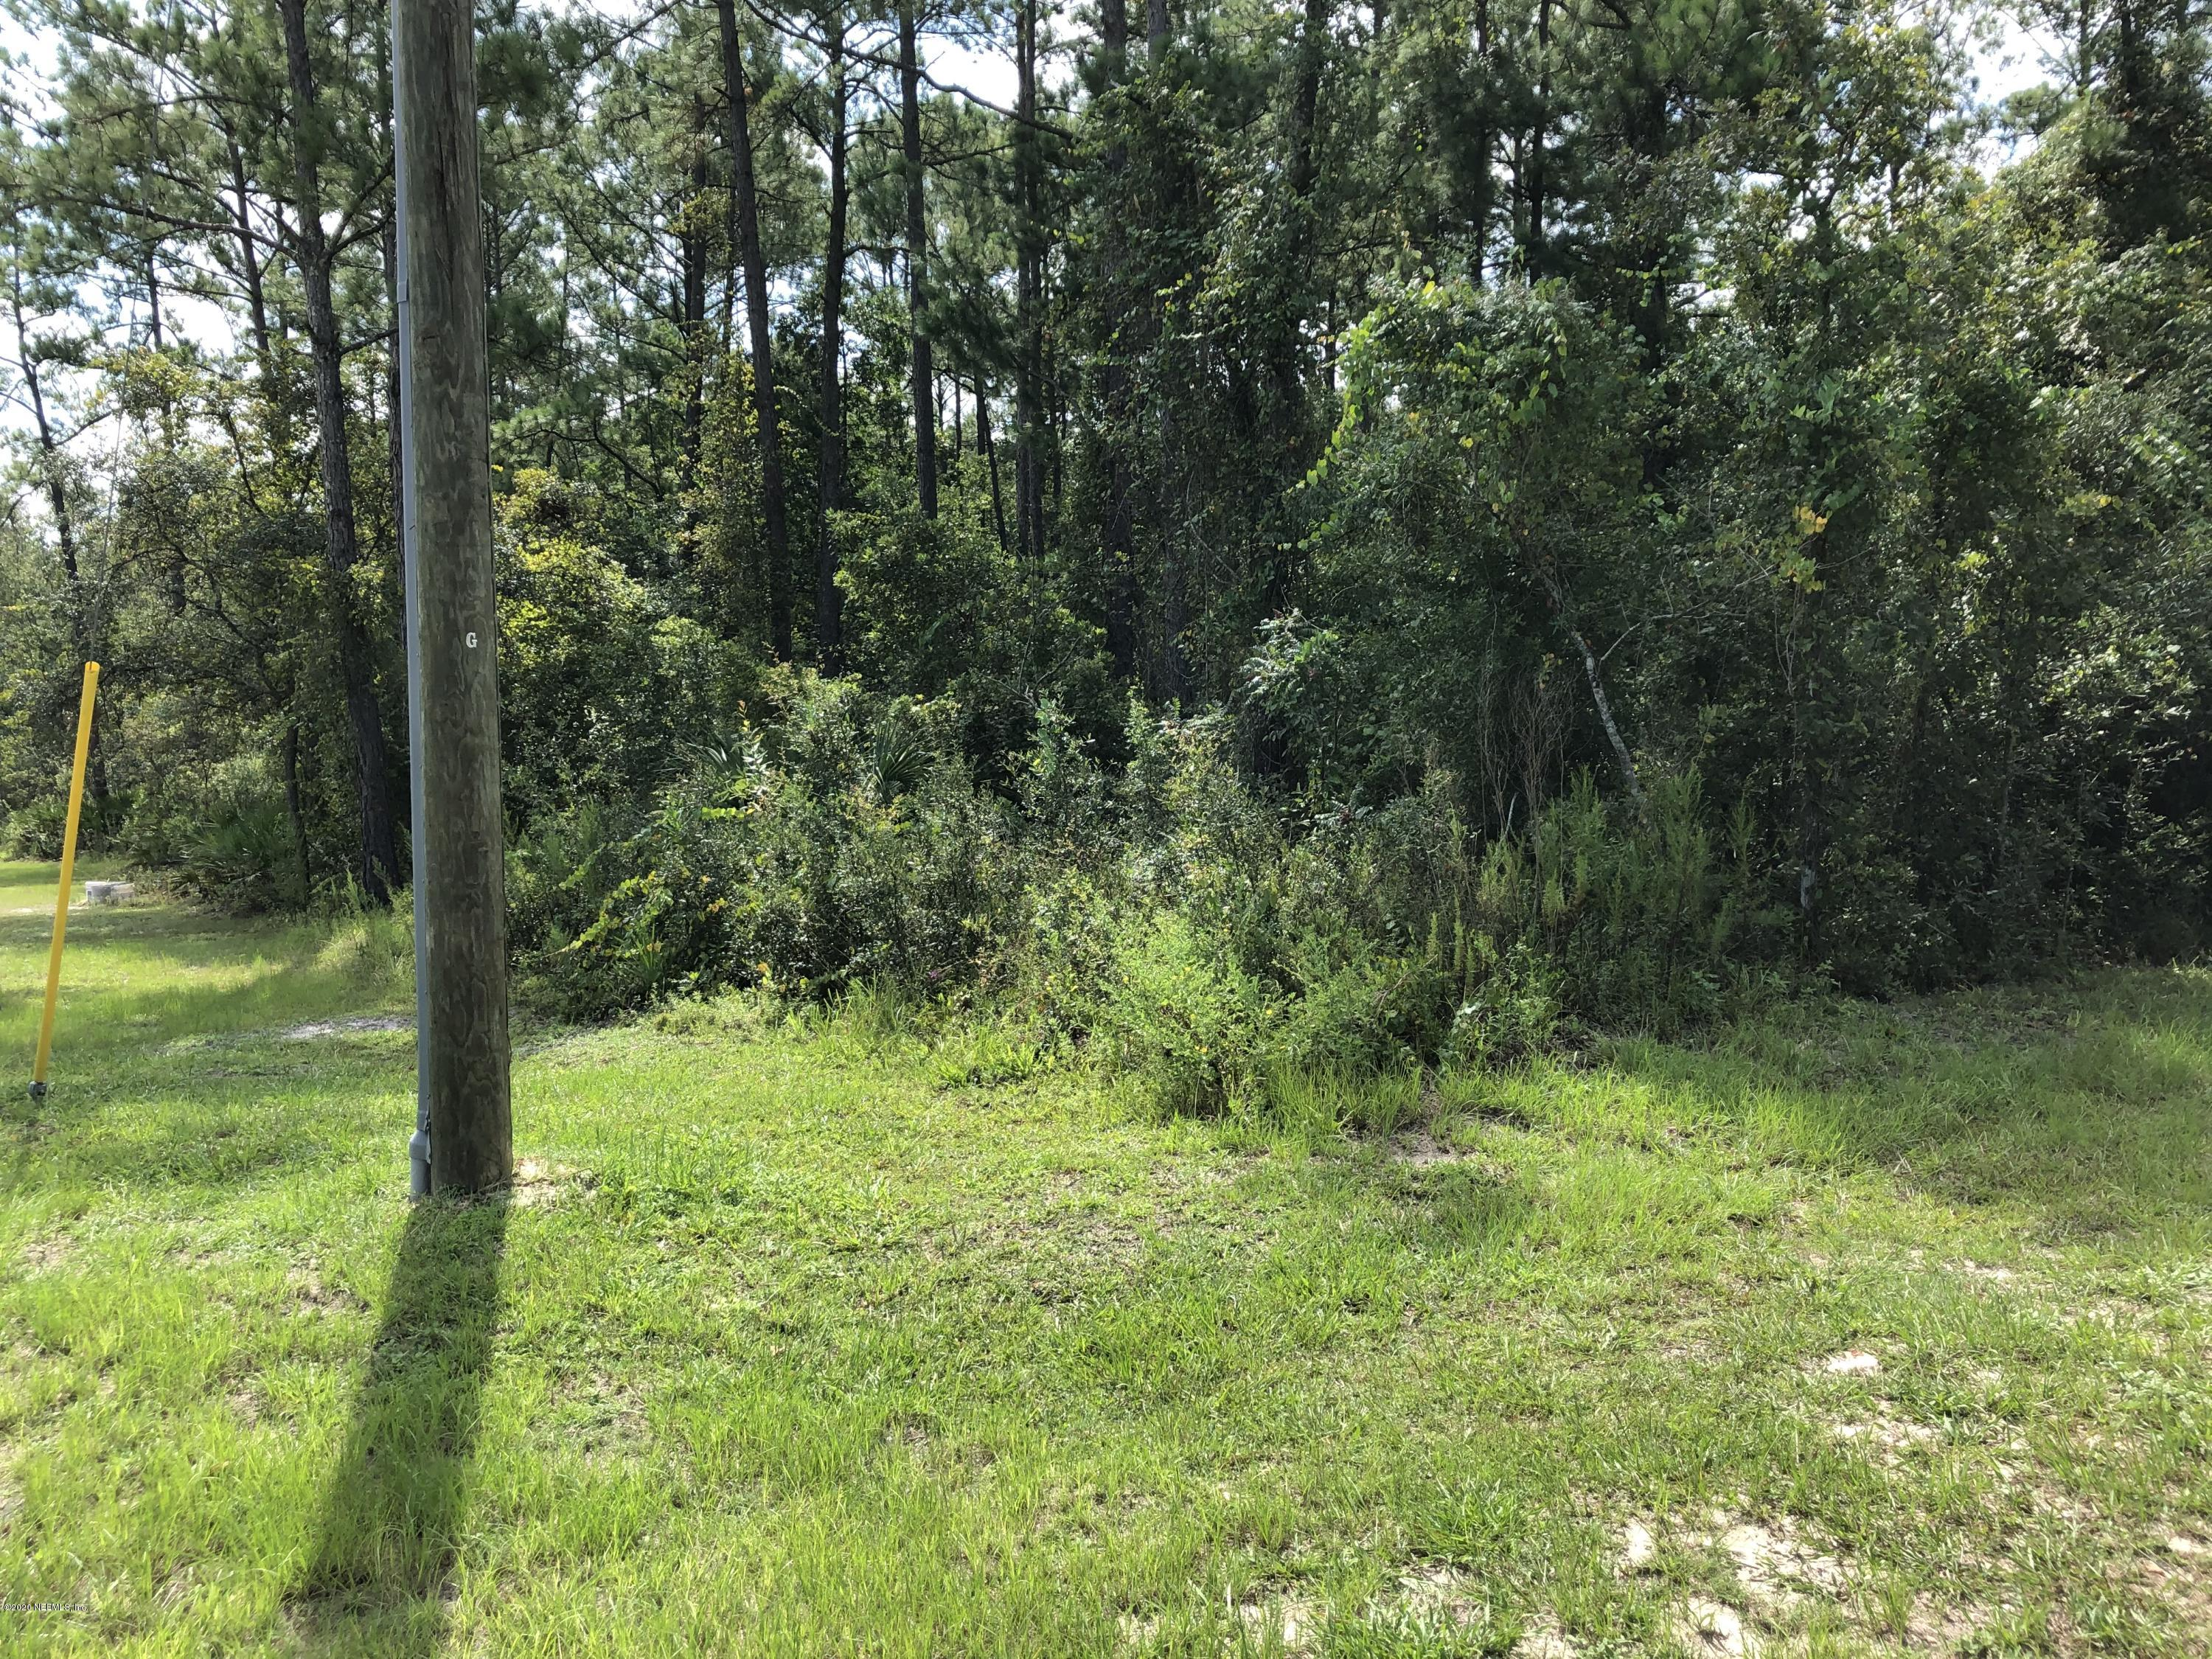 Details for 0 Fl-21, MIDDLEBURG, FL 32068